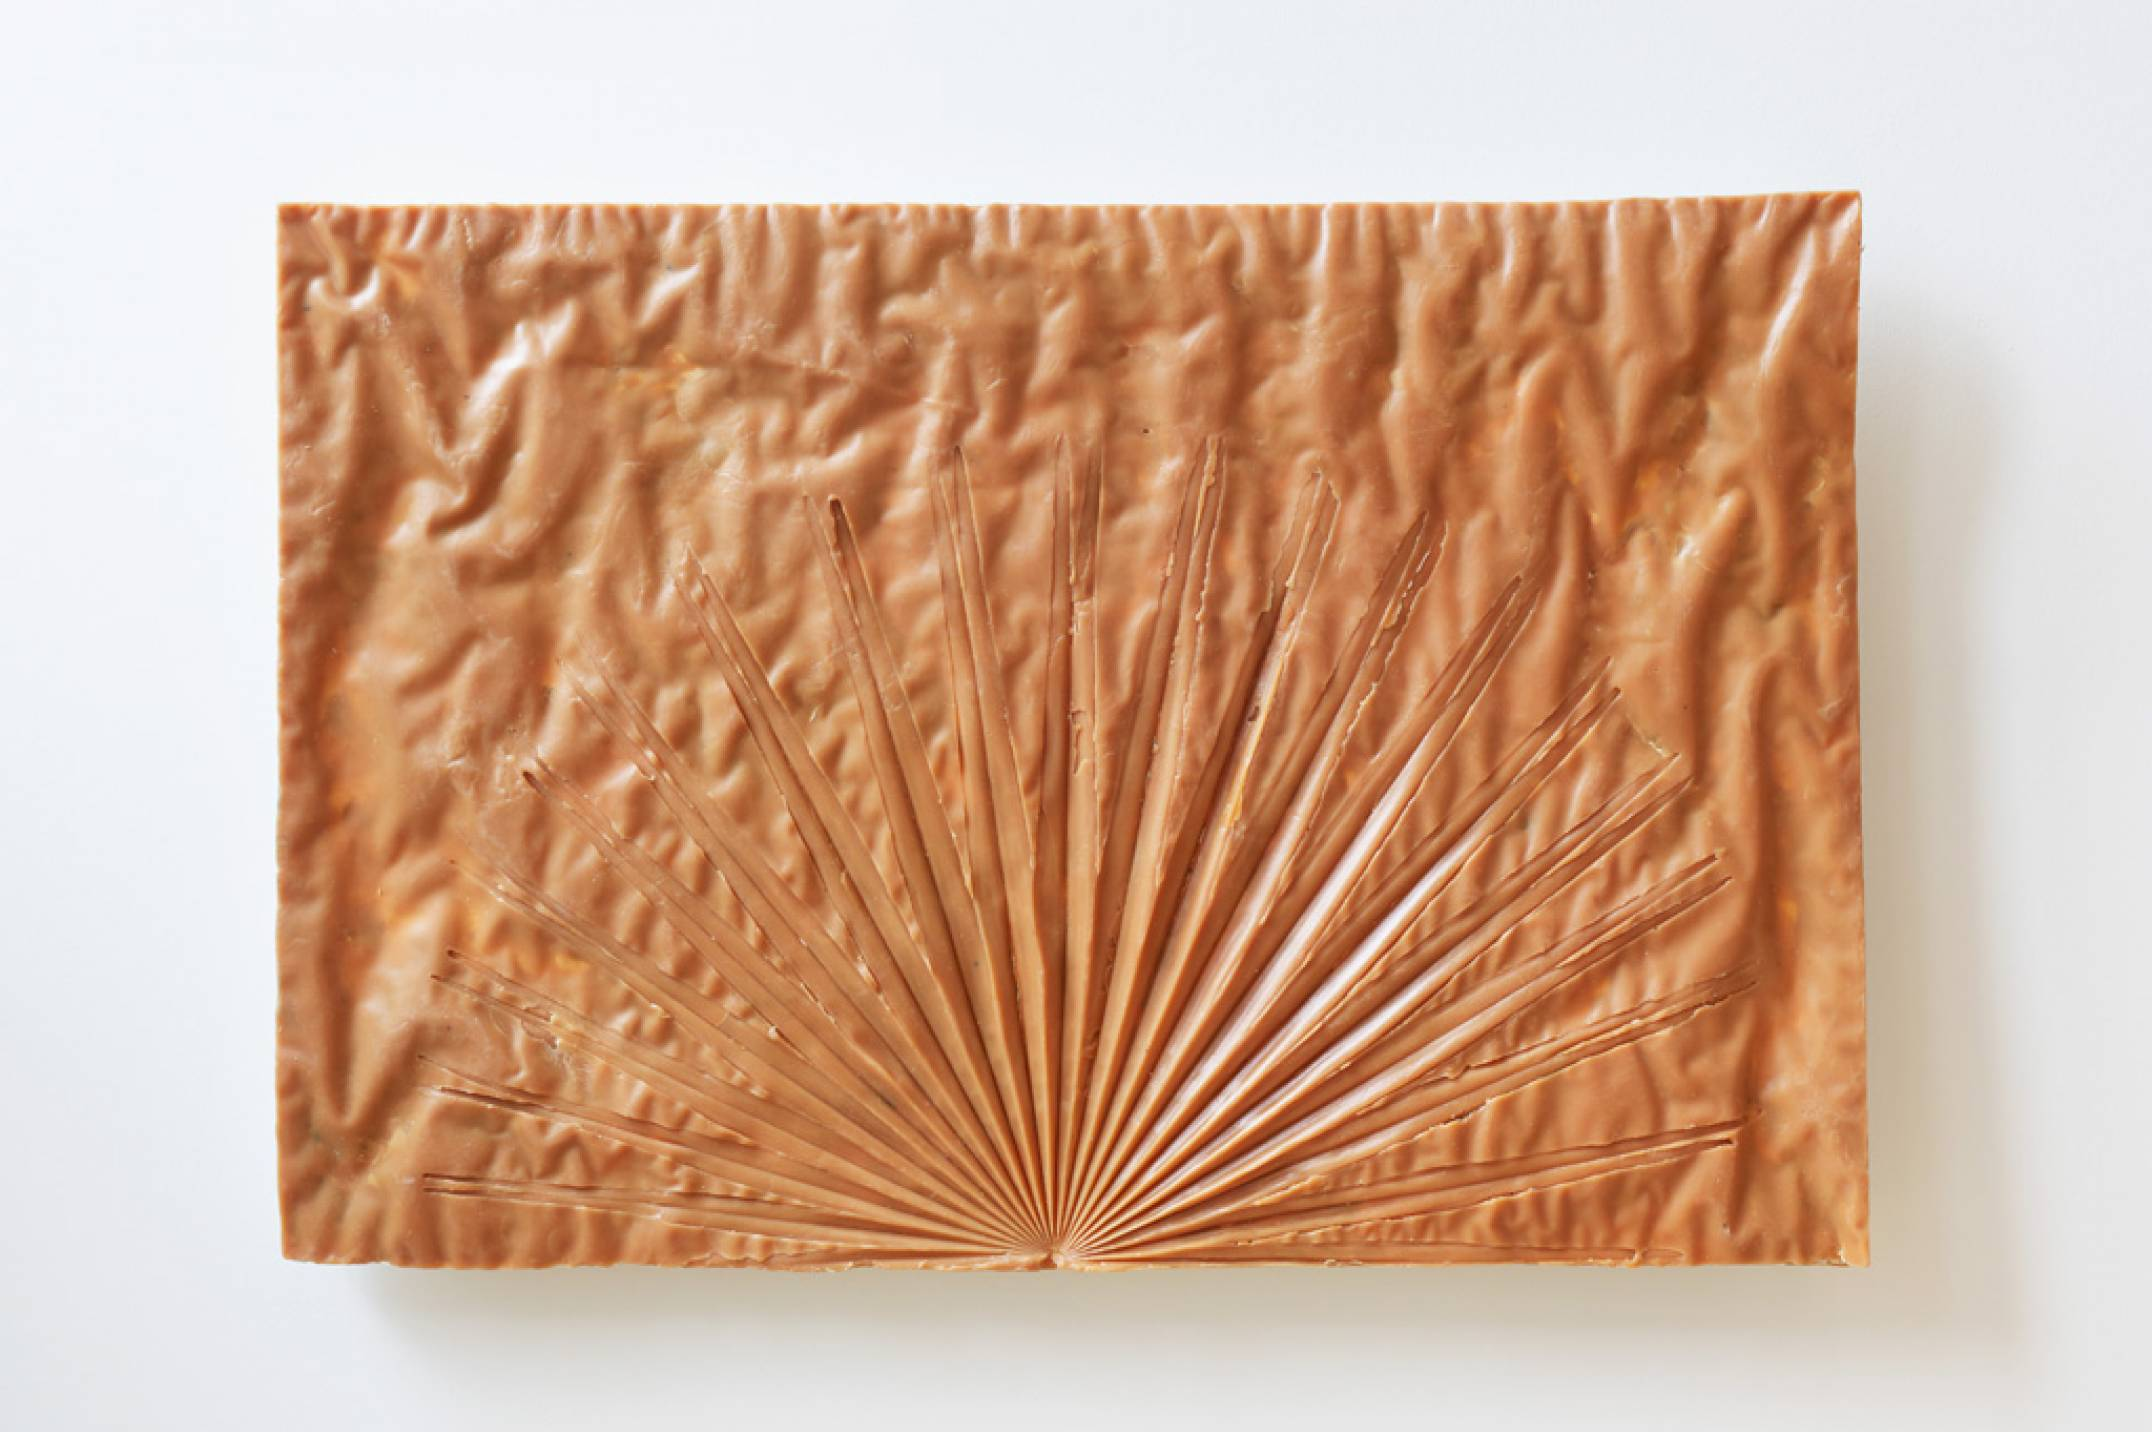 Giulio Delvè, <em>Your amber skin caressed by the rays of sunset</em>, 2017, carnauba wax, beeswax, plaster, 50 × 75 × 5 cm - Mendes Wood DM